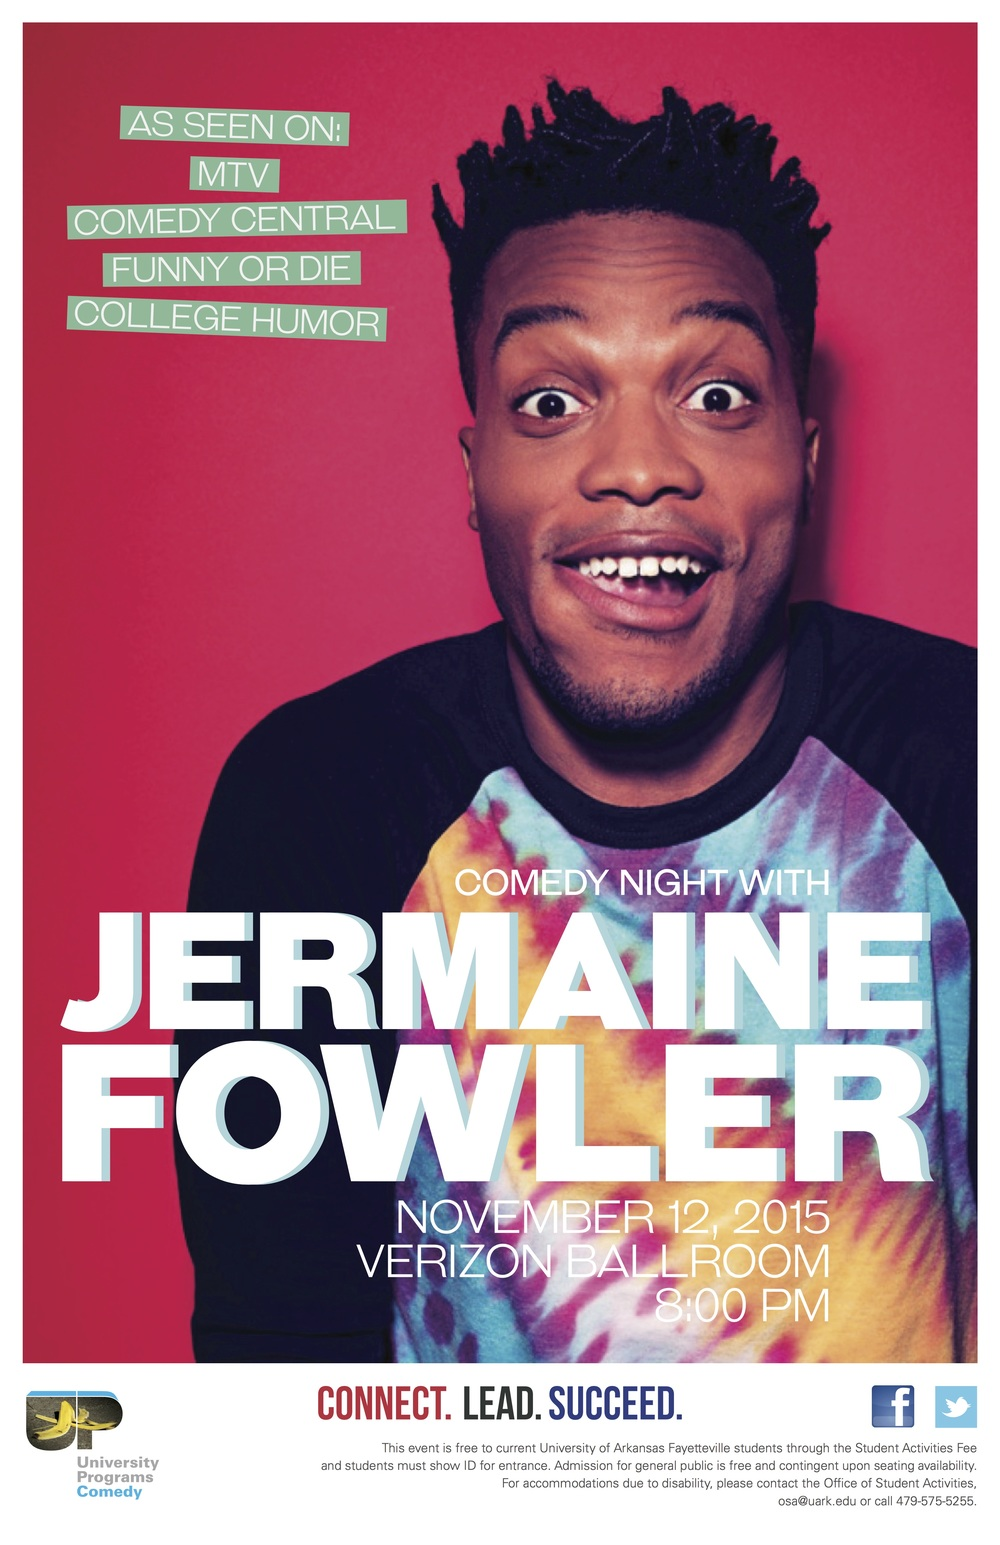 jermaine_fowler copy.jpg